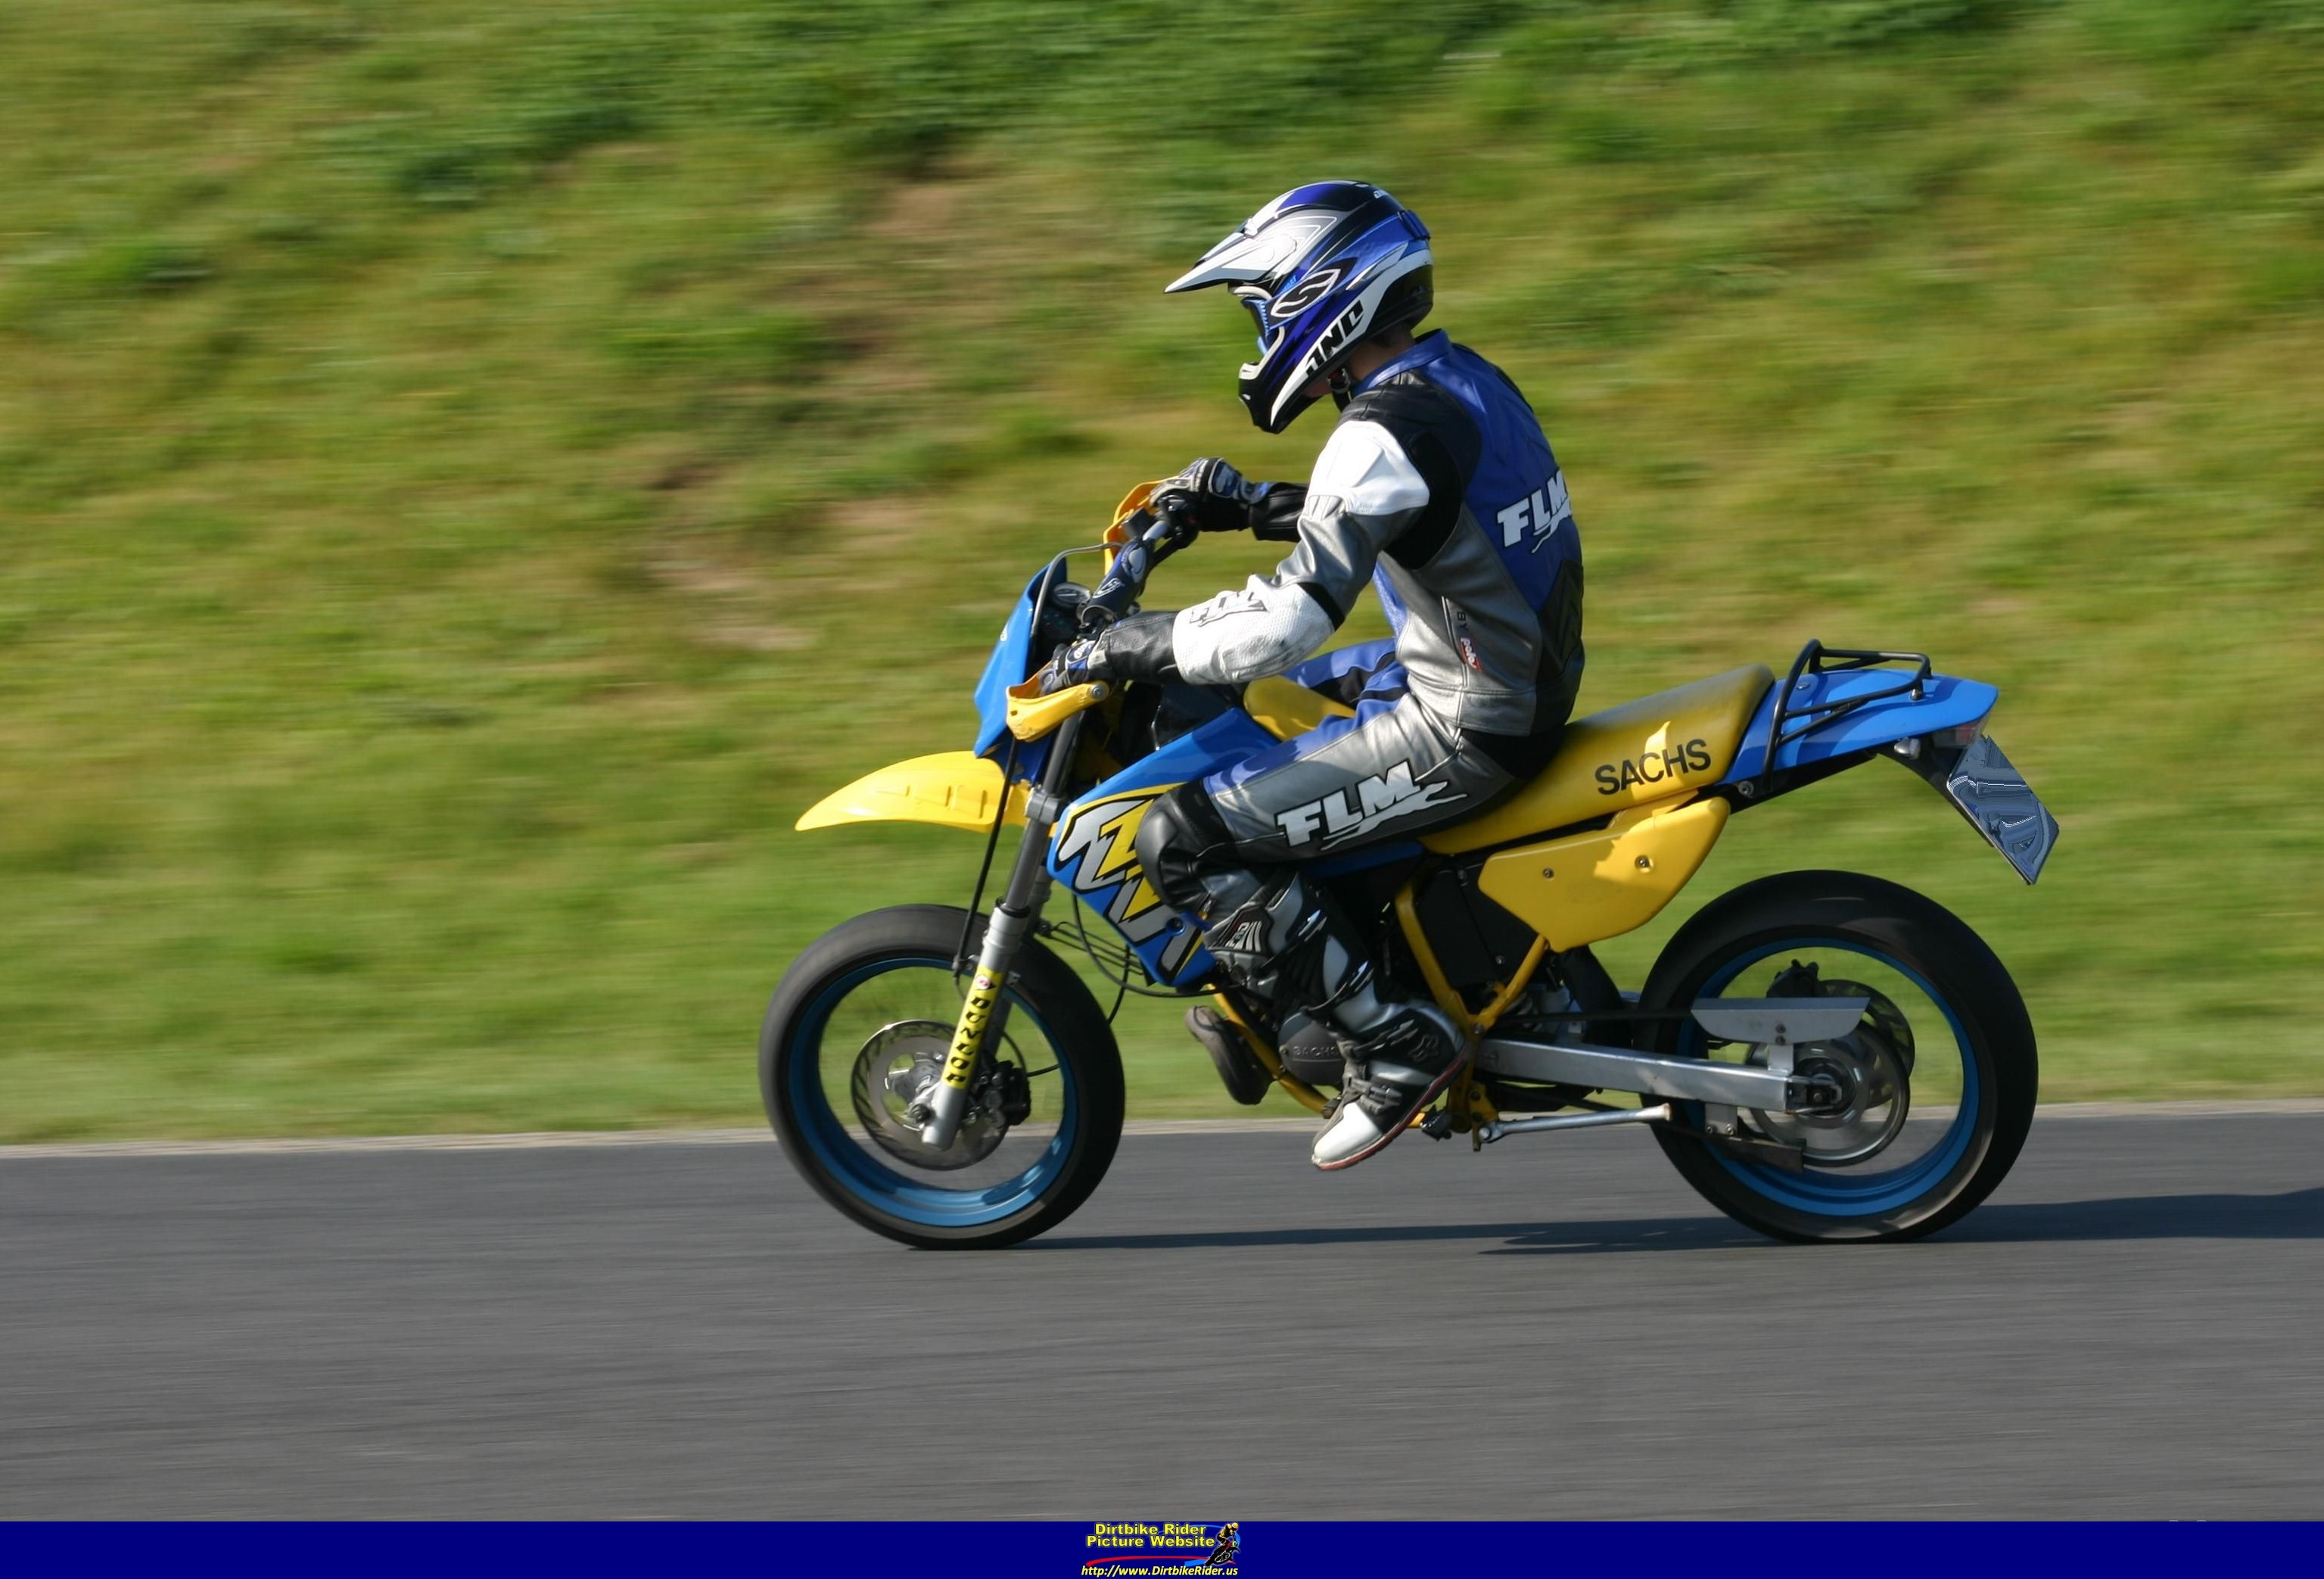 Sachs ZZ 125 2001 images #127616